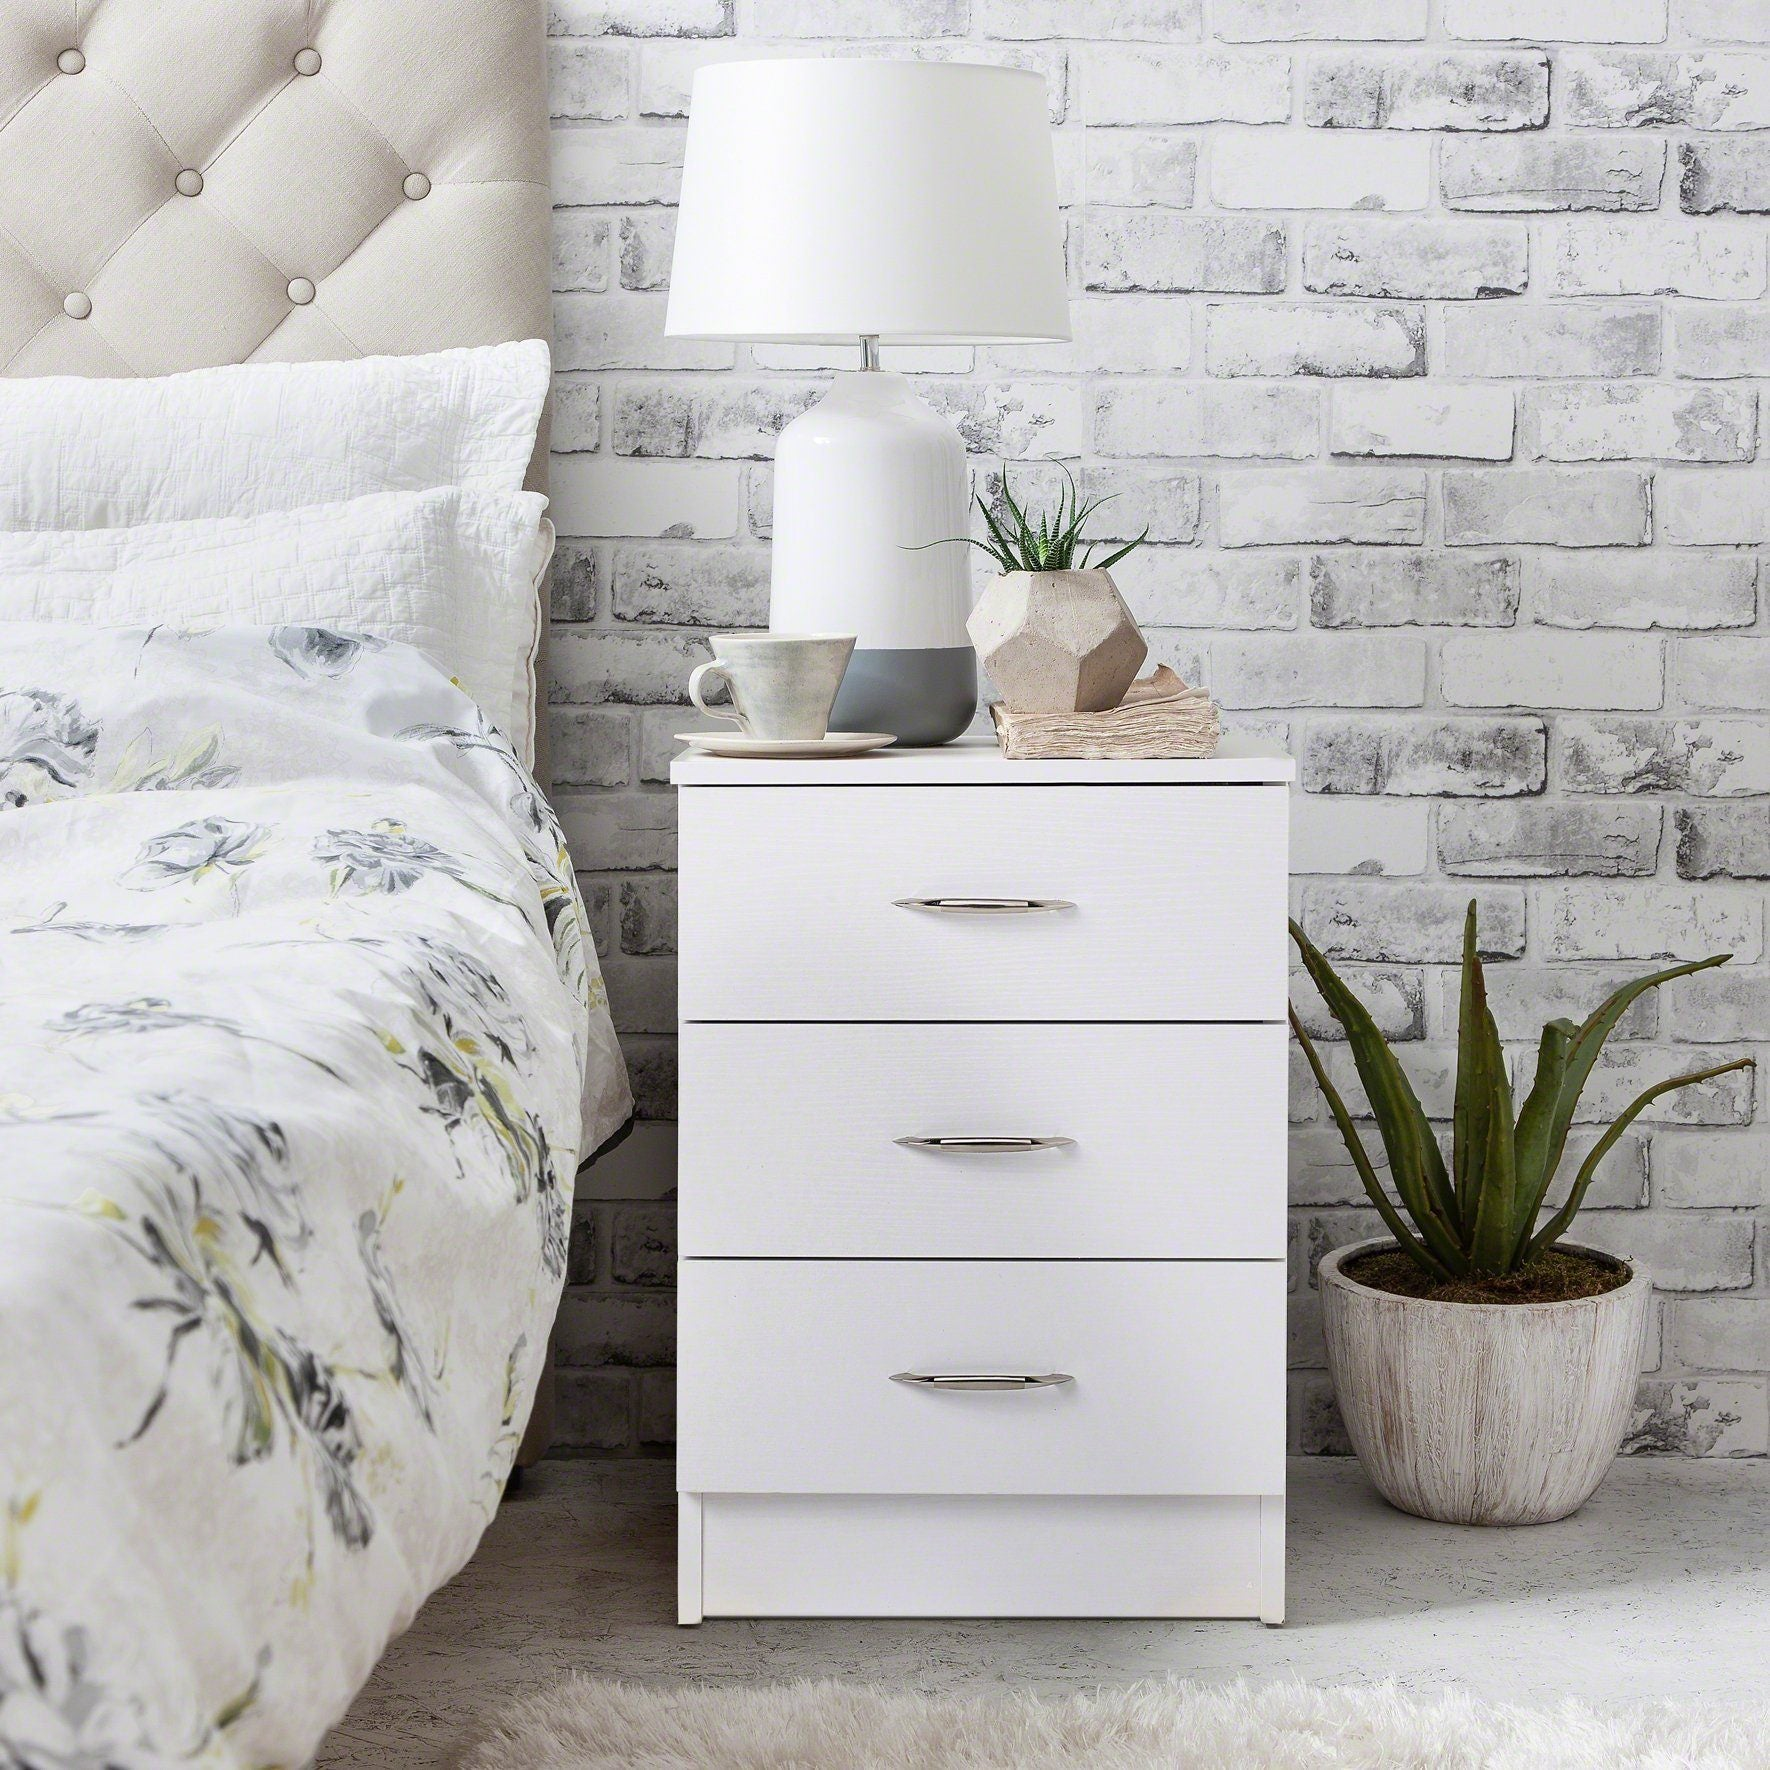 White Bedside Tables Cabinet - 3 Drawers - PRE-ORDER - IN STOCK – 23 - 24 September - Laura James